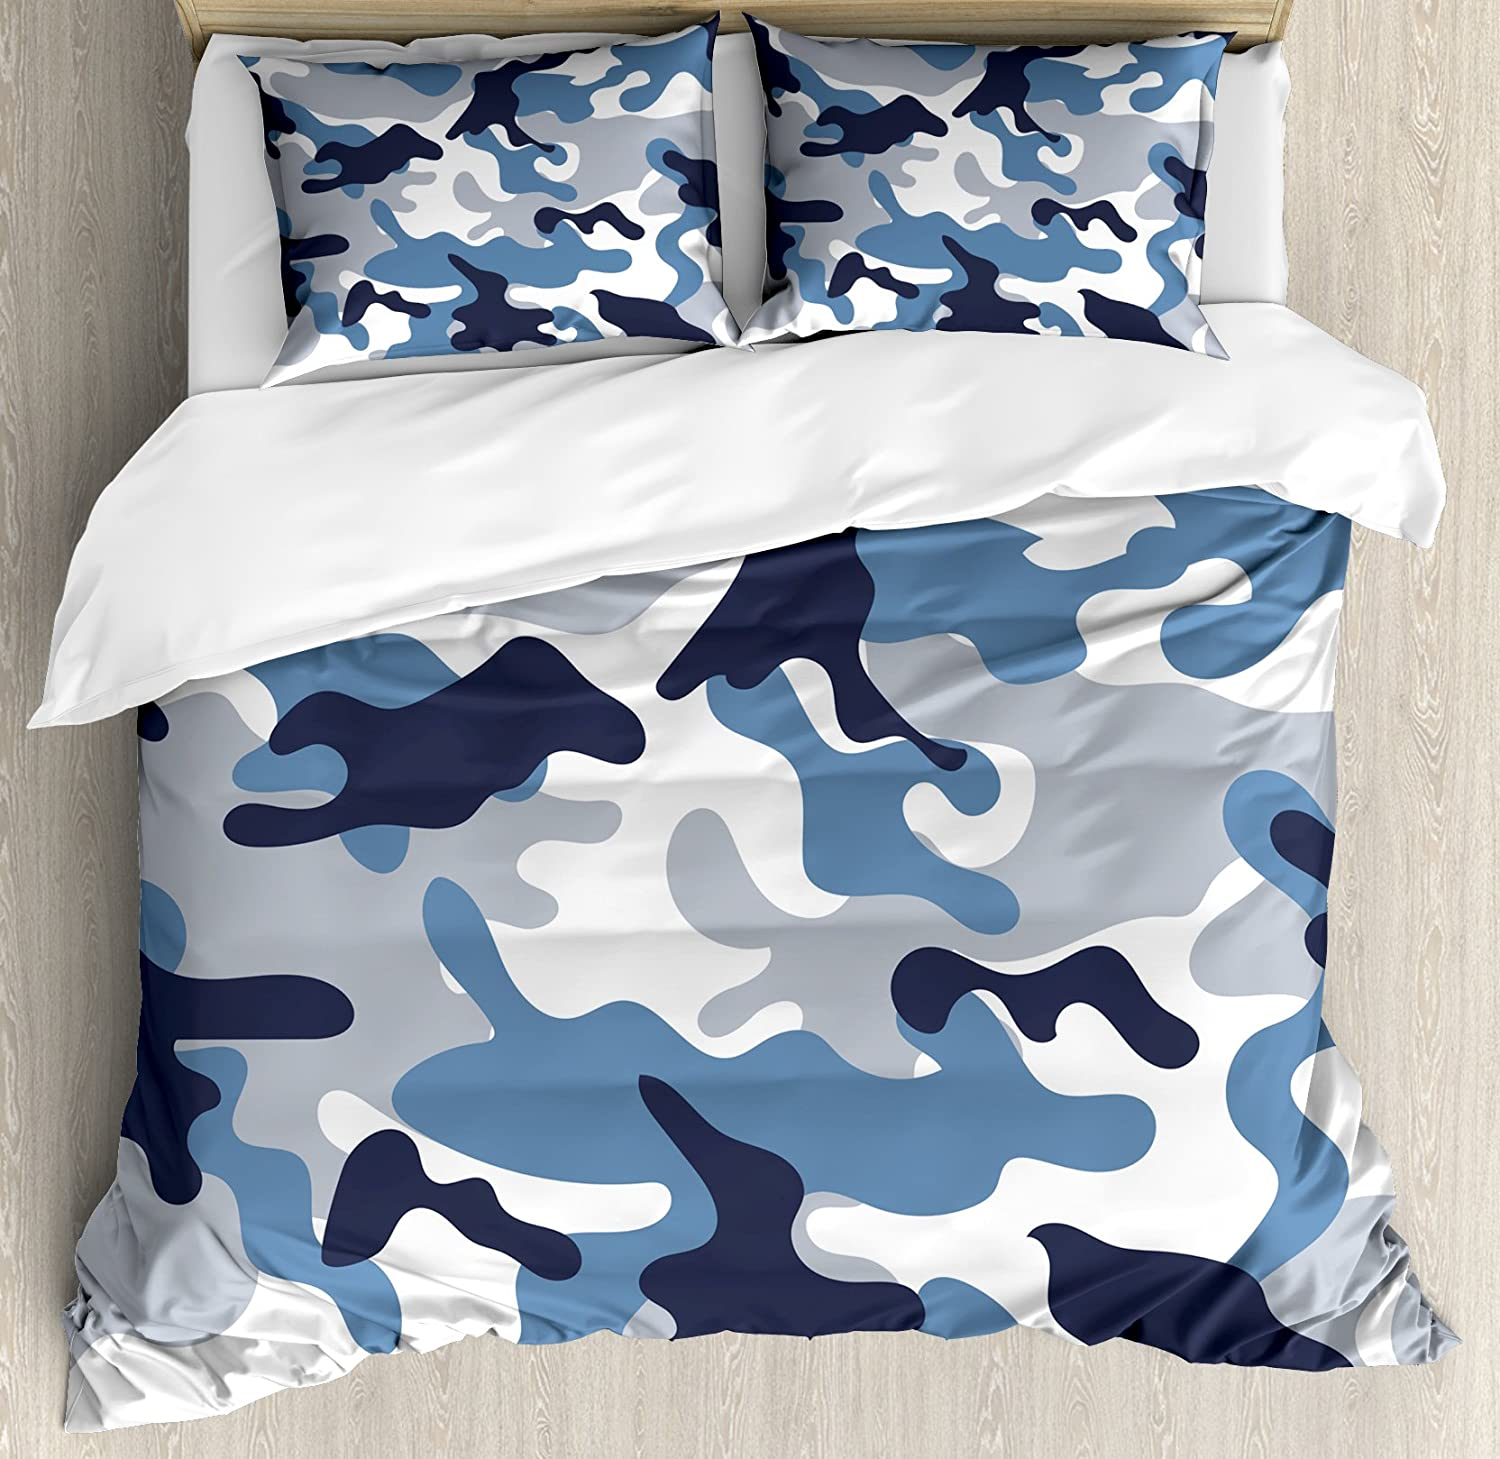 Ambesonne Camouflage Duvet Cover Set, Illustration with Abstract Soft Colors Pattern Camouflage Design, Decorative 3 Piece Bedding Set with 2 Pillow Shams, Queen Size, Blue Indigo